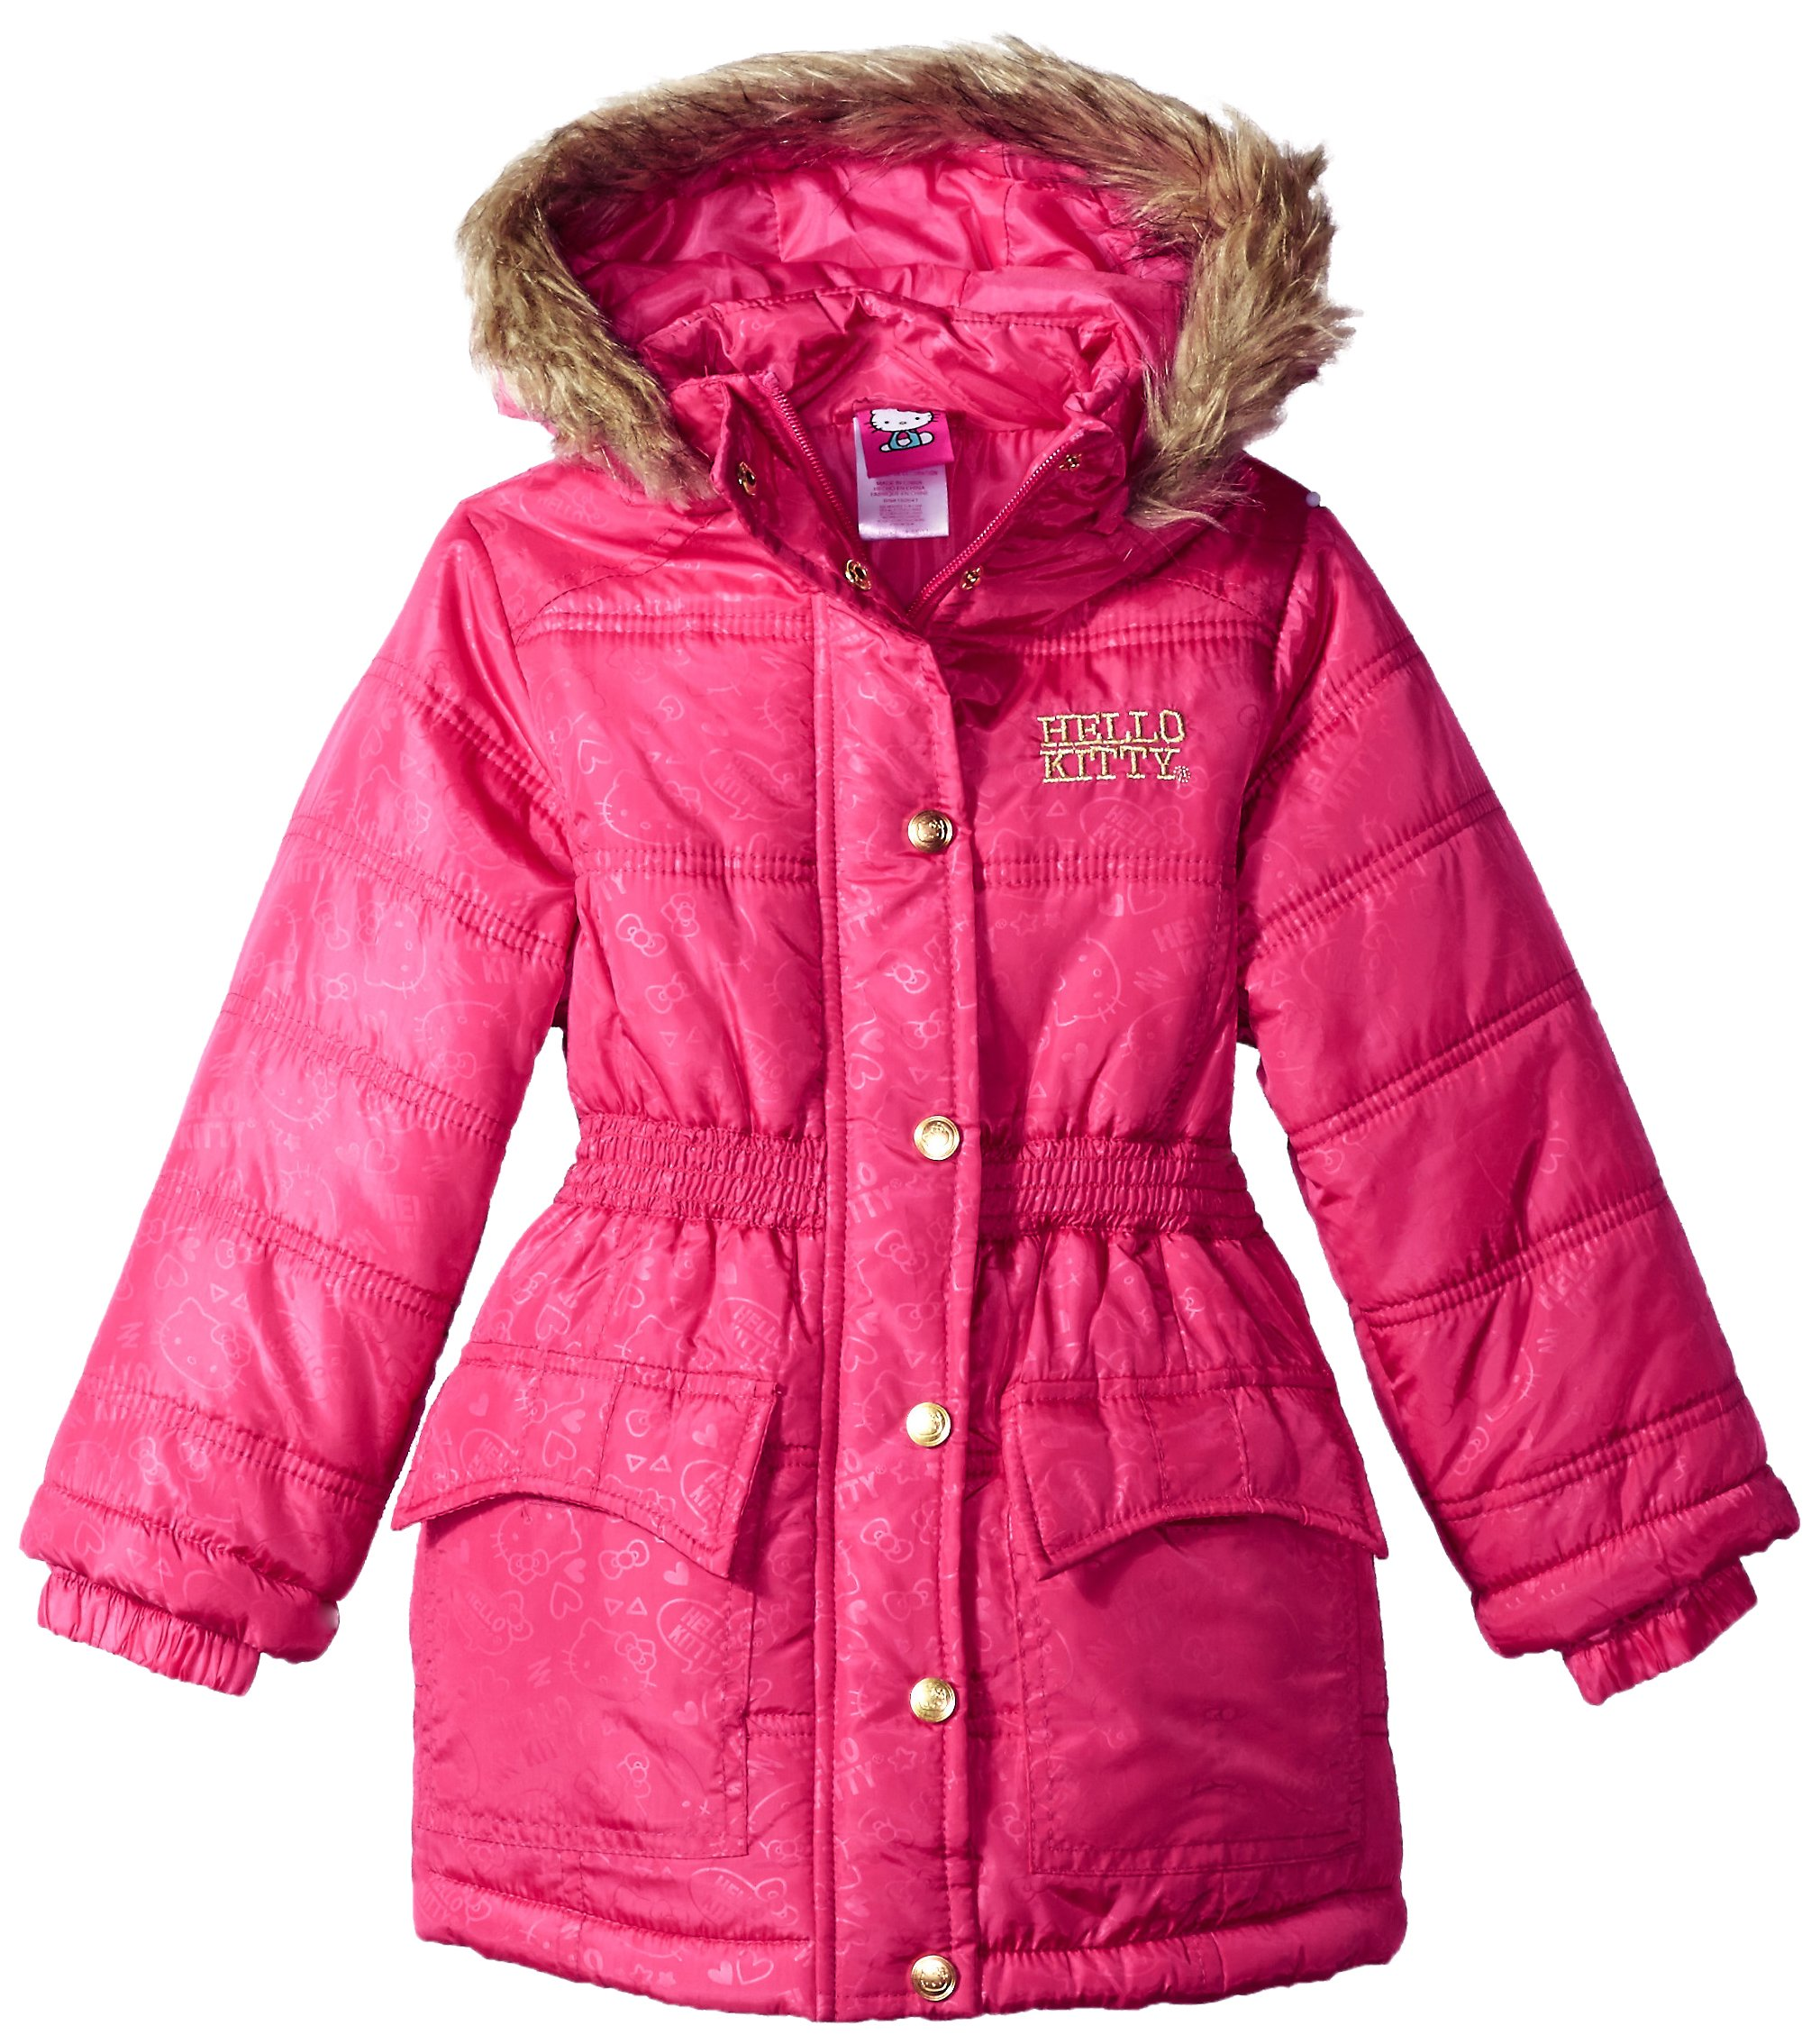 2614103fa Galleon - Hello Kitty Big Girls All Over Printed Long Puffer With Faux Fur  Trim Hood, Pink, 8